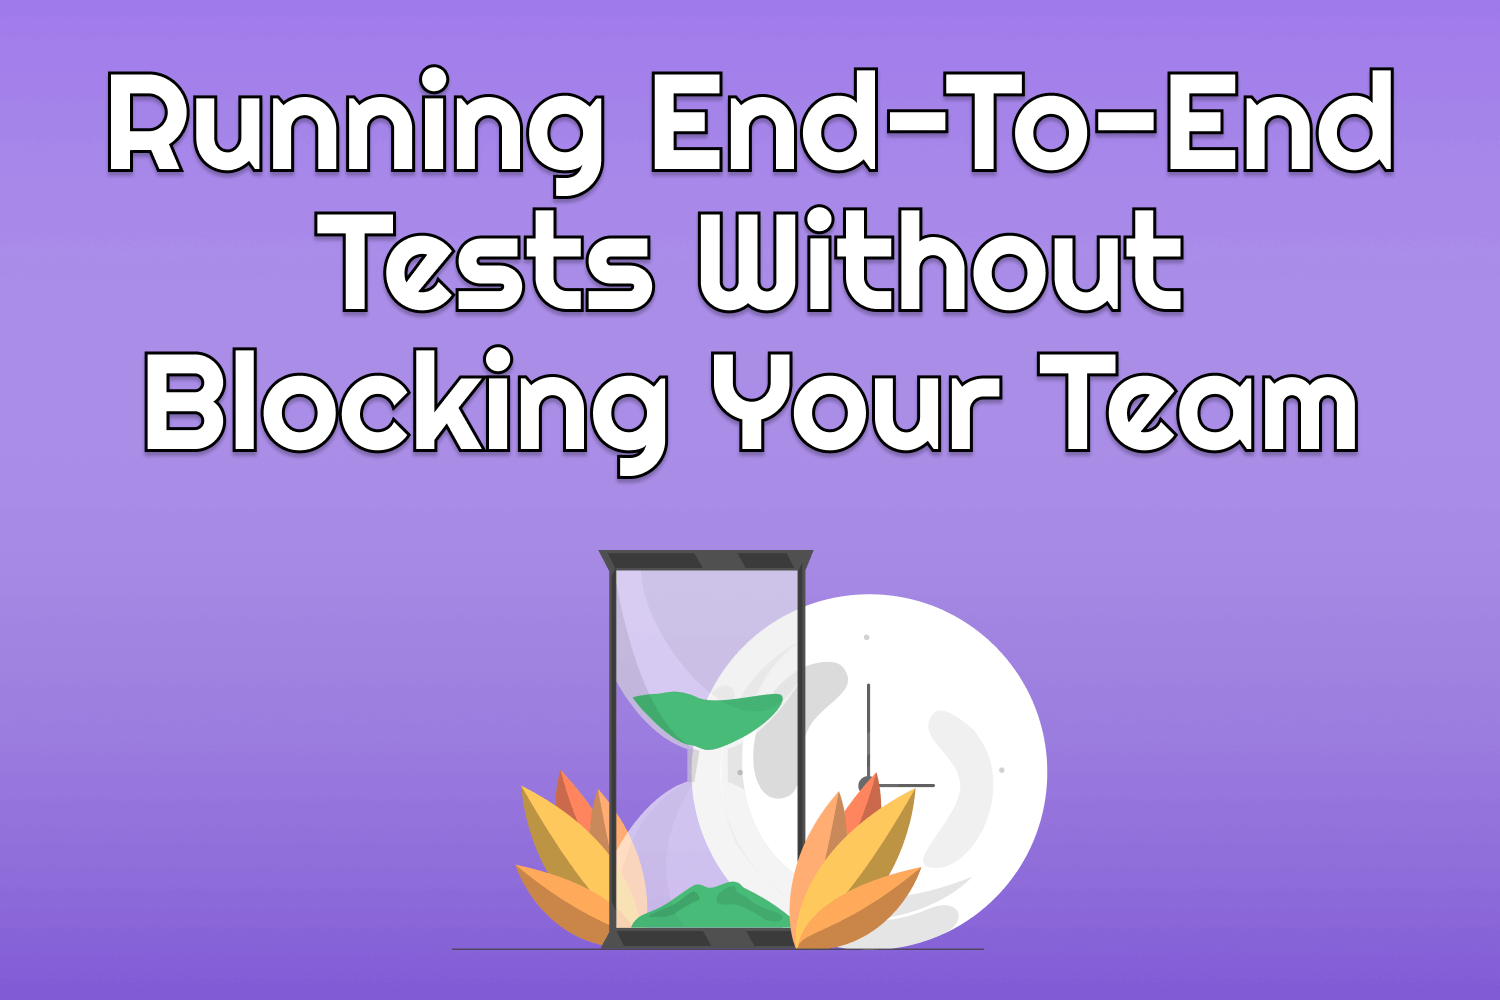 Running End-To-End Tests Without Blocking Your Team